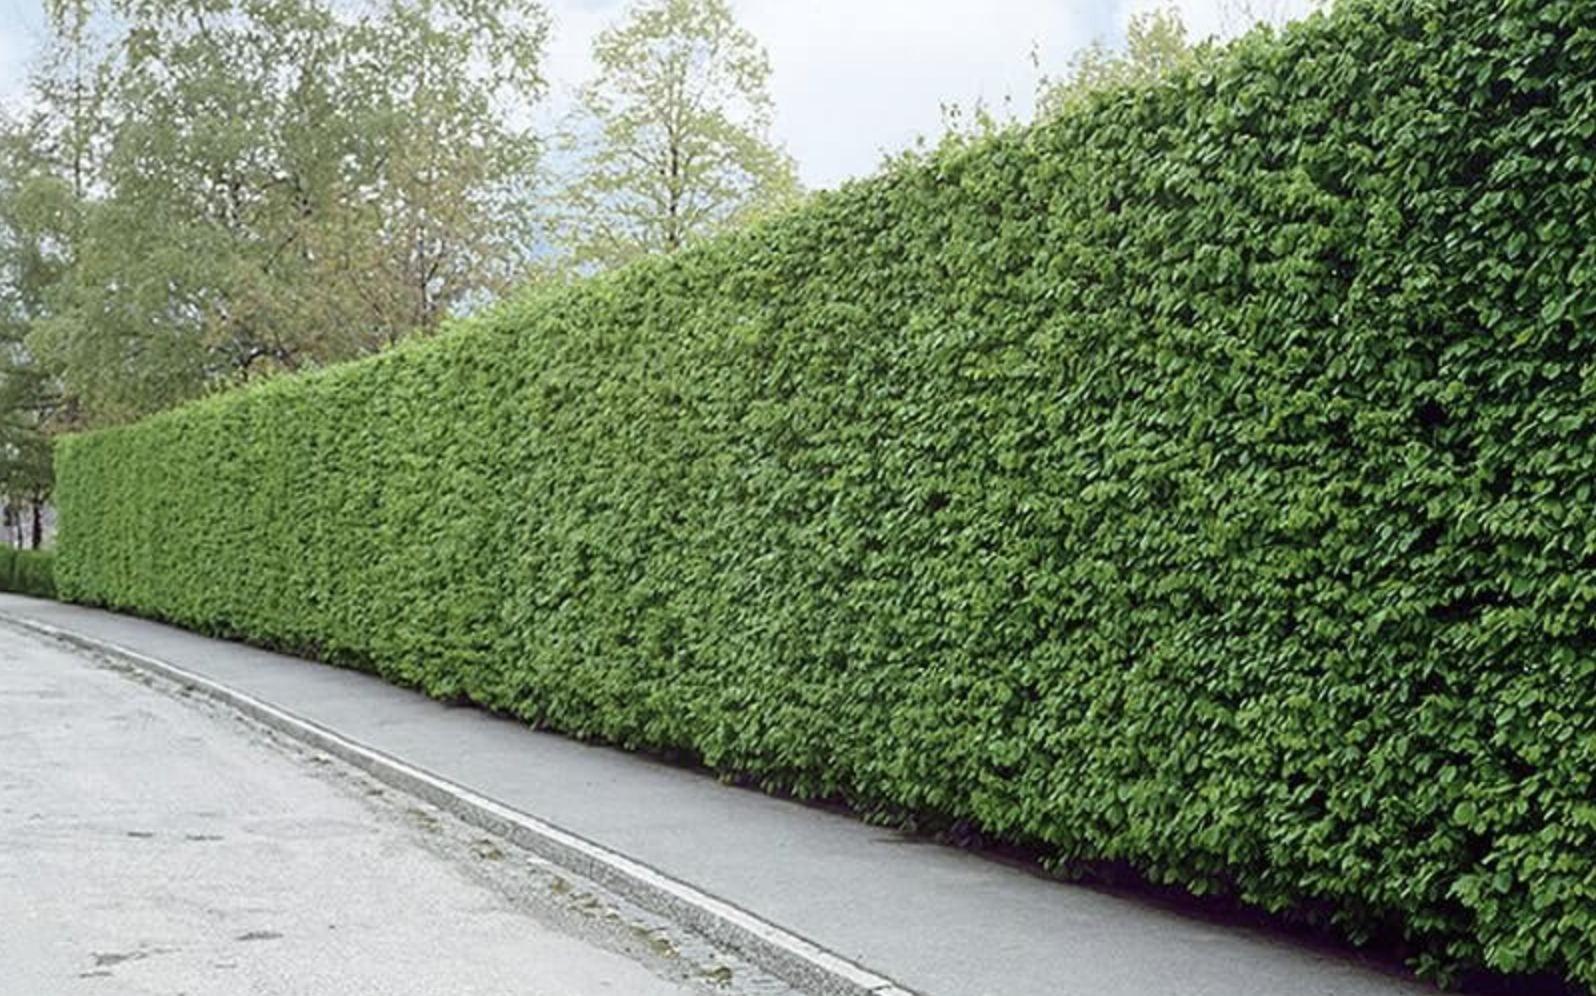 Plant hedges in cities